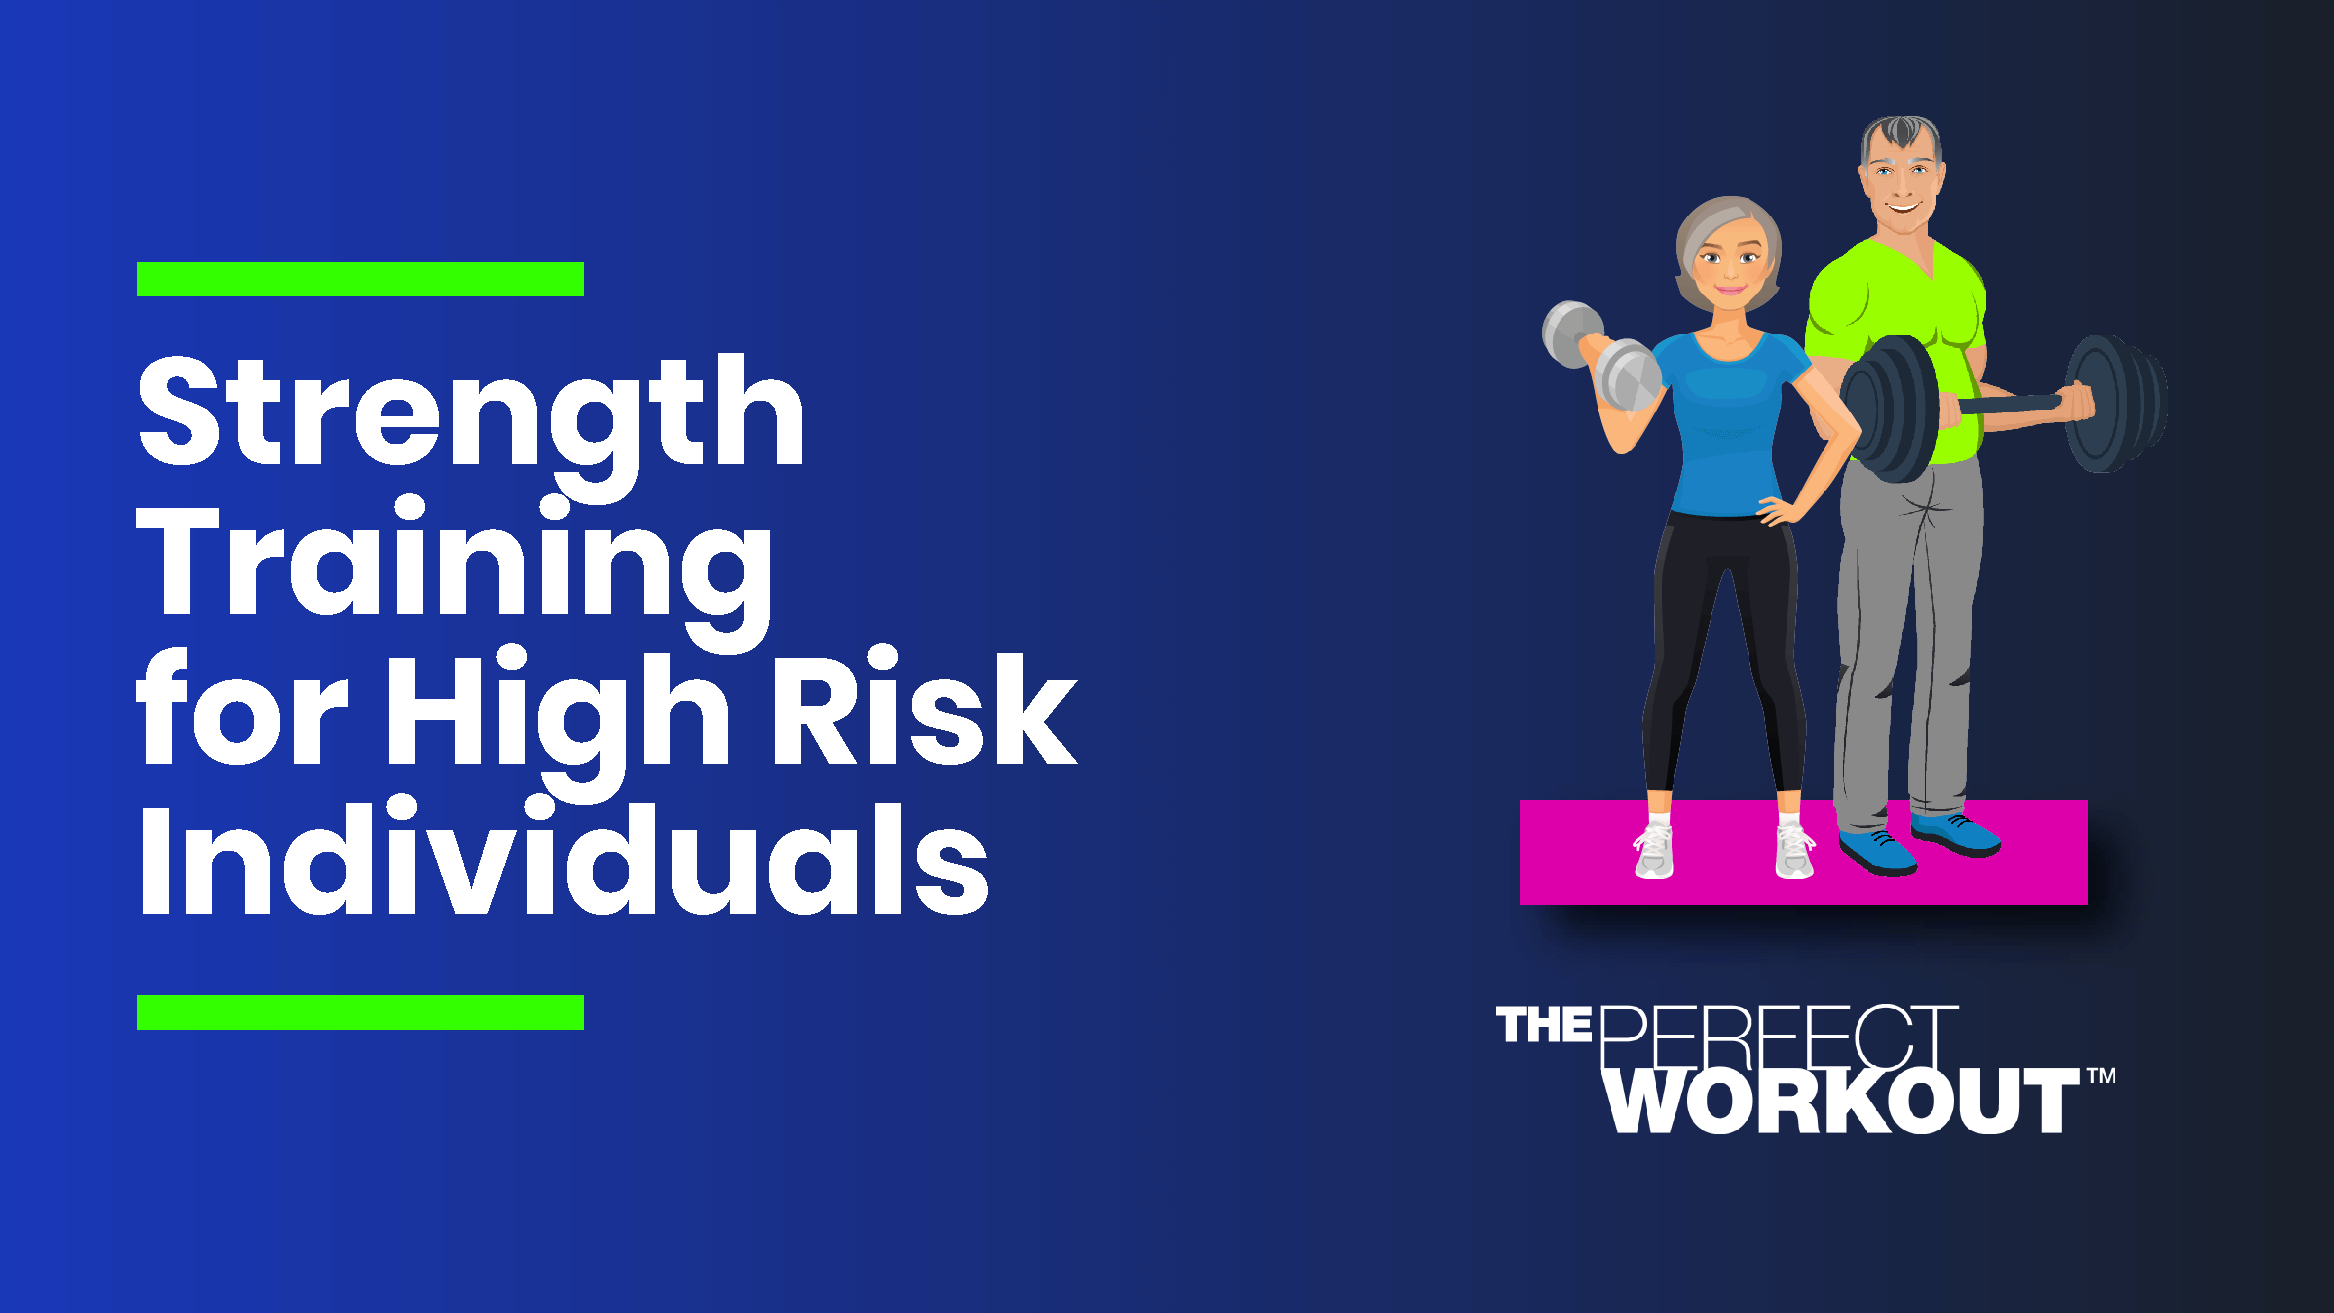 Strength Training for Those At-Risk of Heart Disease & Diabetes